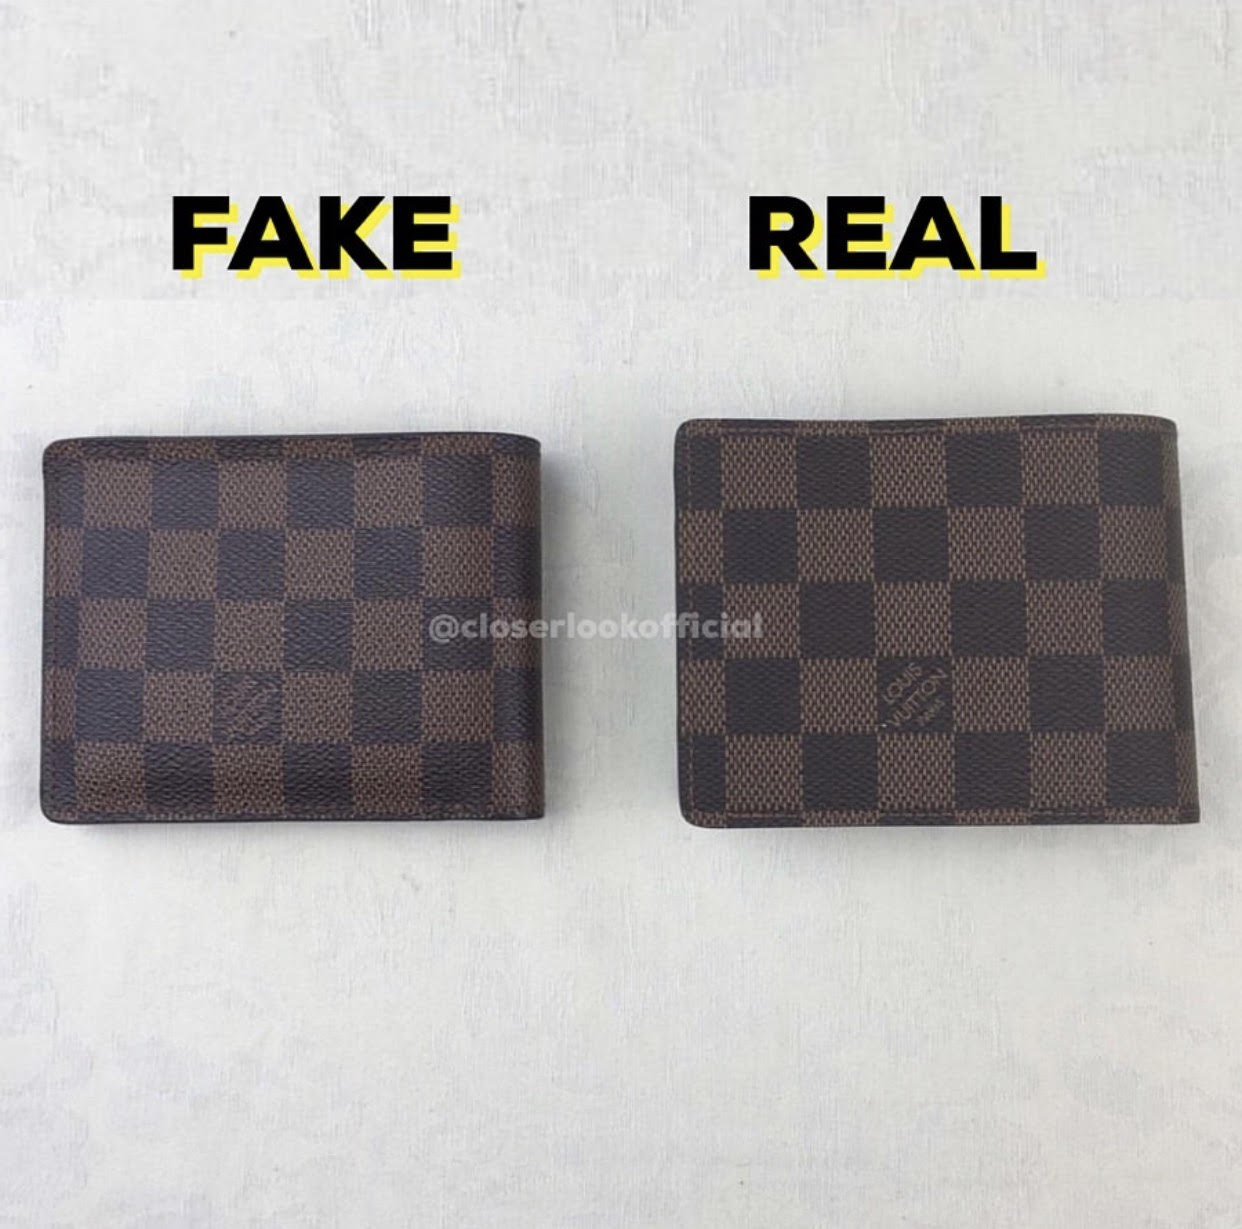 136f0add85e5 How To Spot a Fake Louis Vuitton Multiple Wallet - Brands Blogger